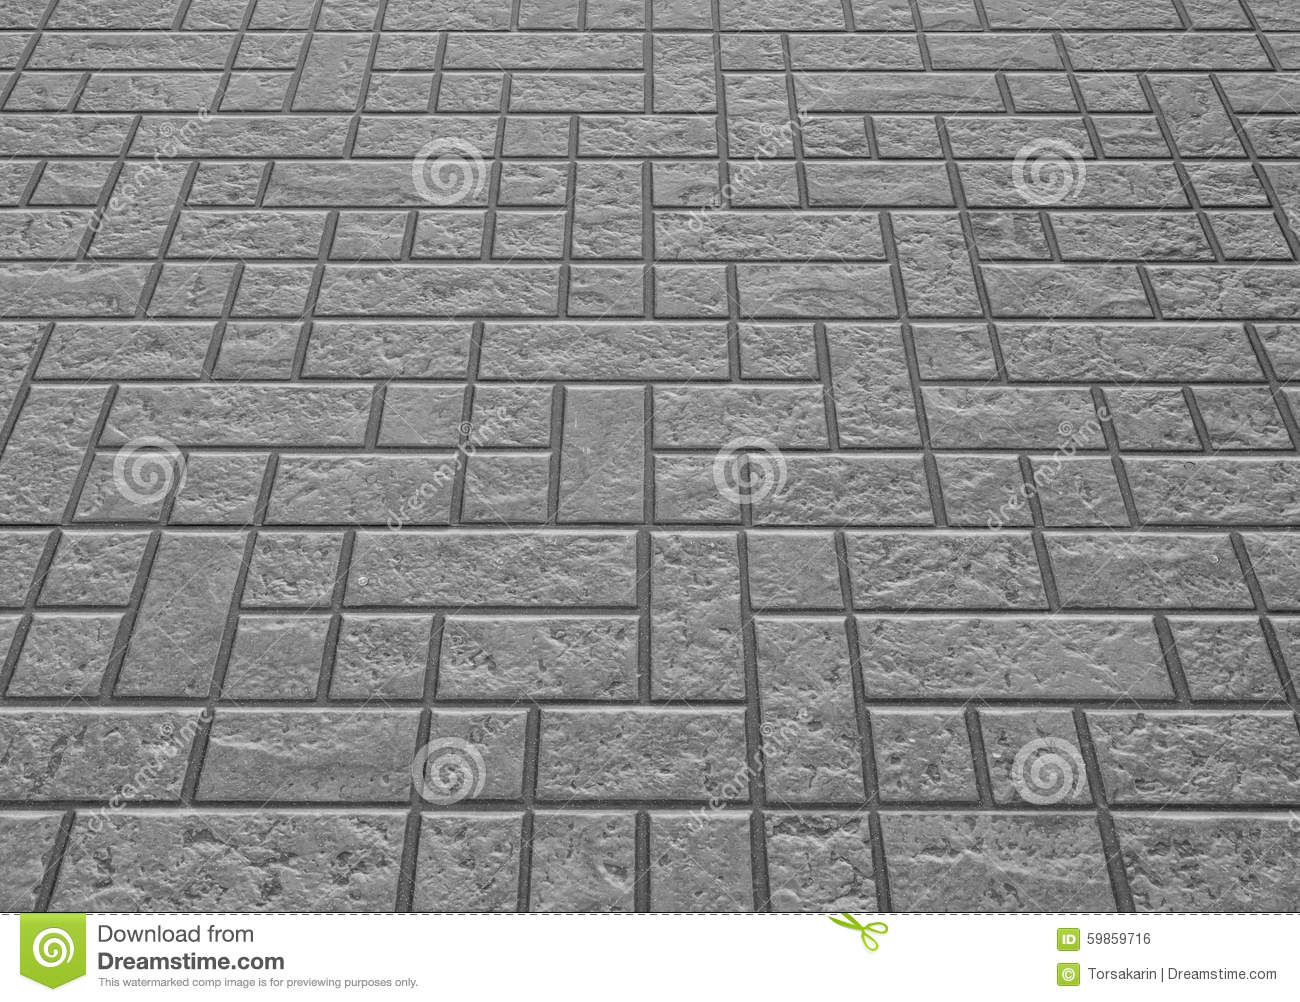 Concrete block floor background and texture stock for Concrete block floor